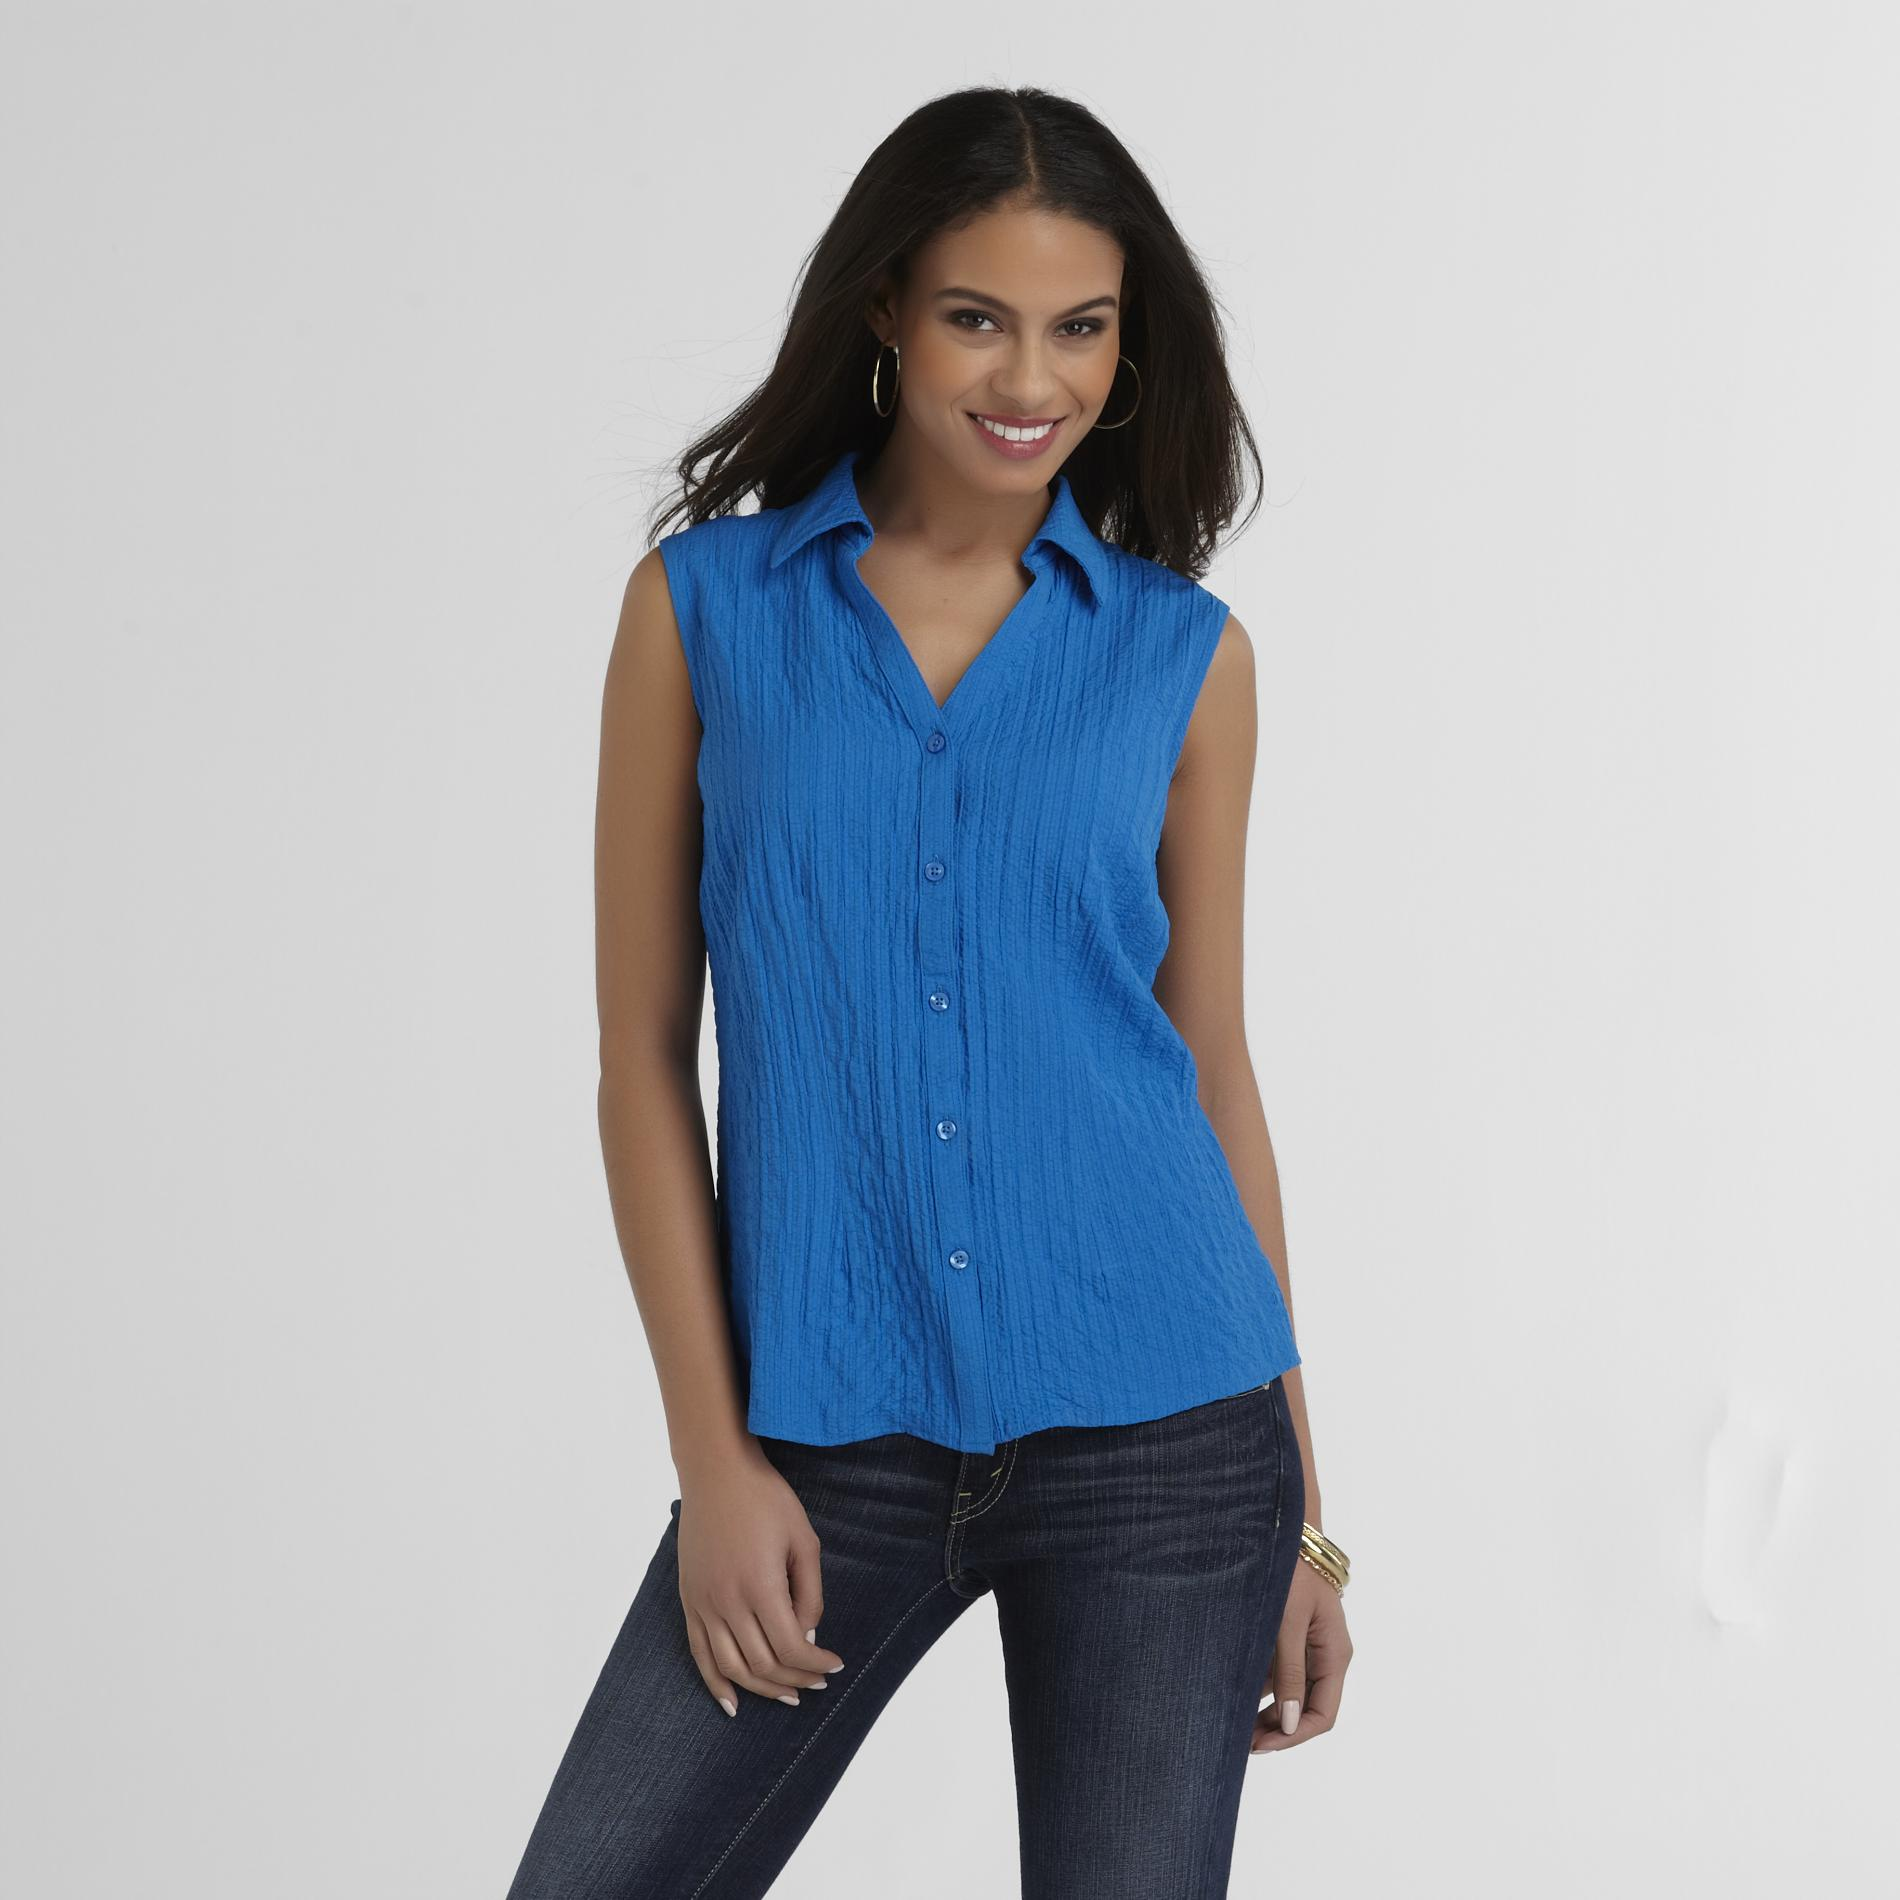 Basic Editions Women's Camp Shirt - Puckered at Kmart.com